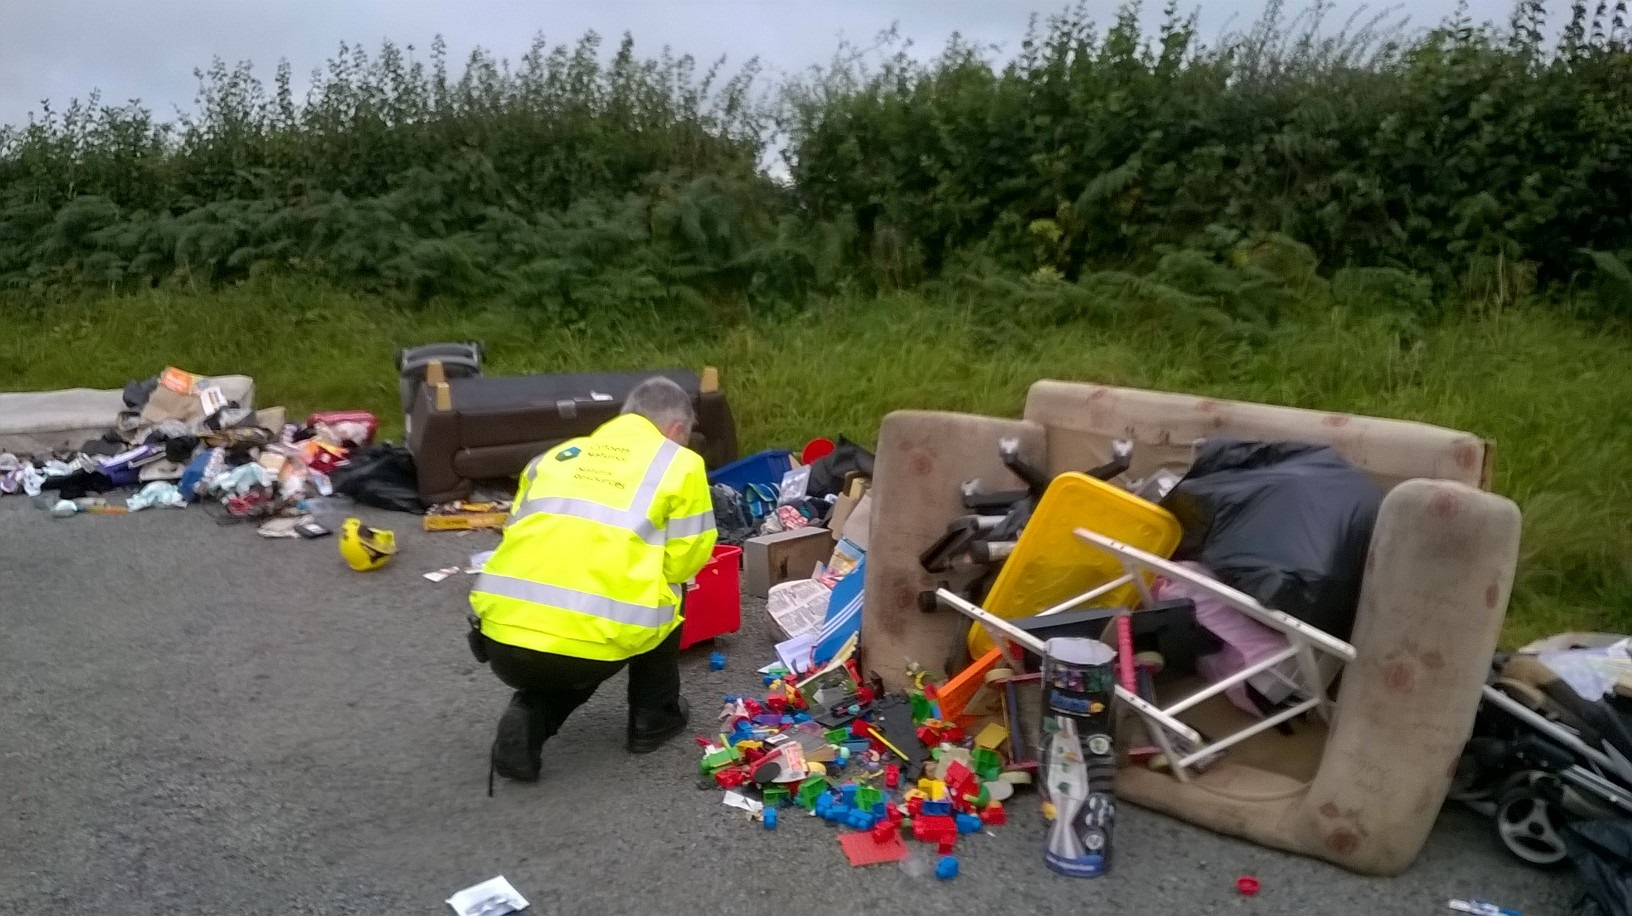 NRW staff invesigating fly tipping mess